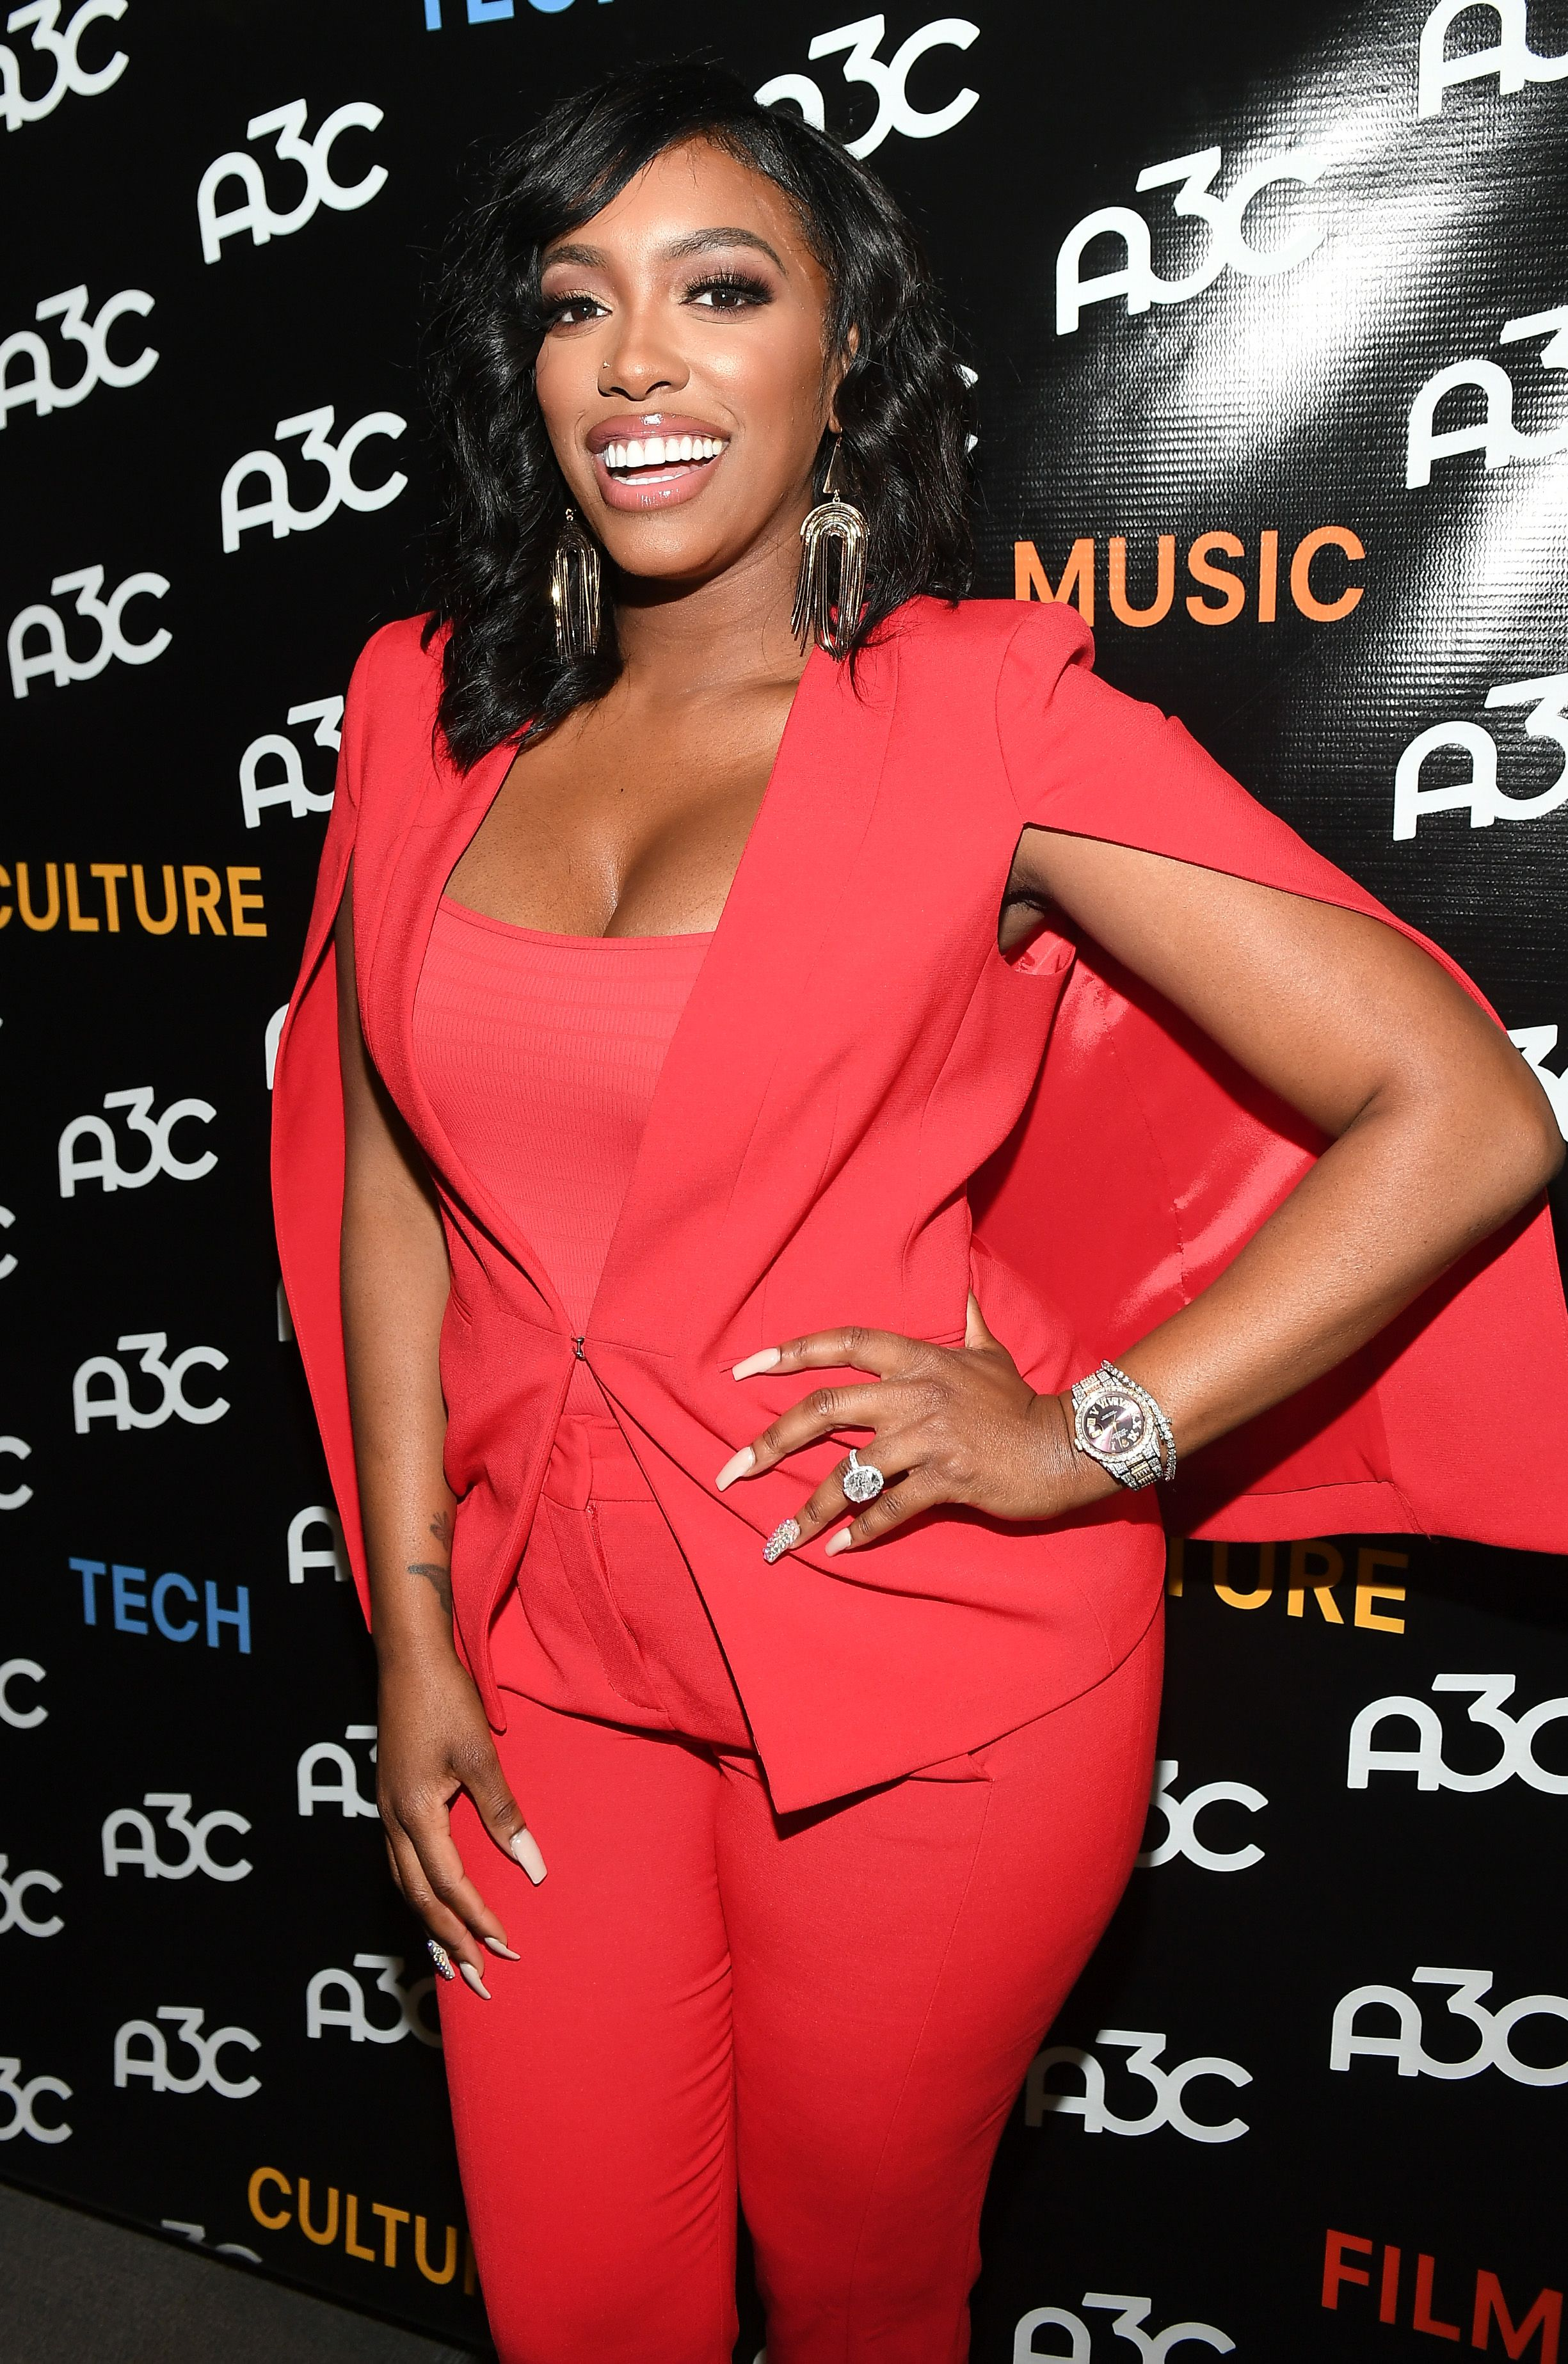 Porsha Williams attends the A3C Festival & Conference at AmericasMart on October 10, 2019 in Atlanta, Georgia. | Source: Getty Images